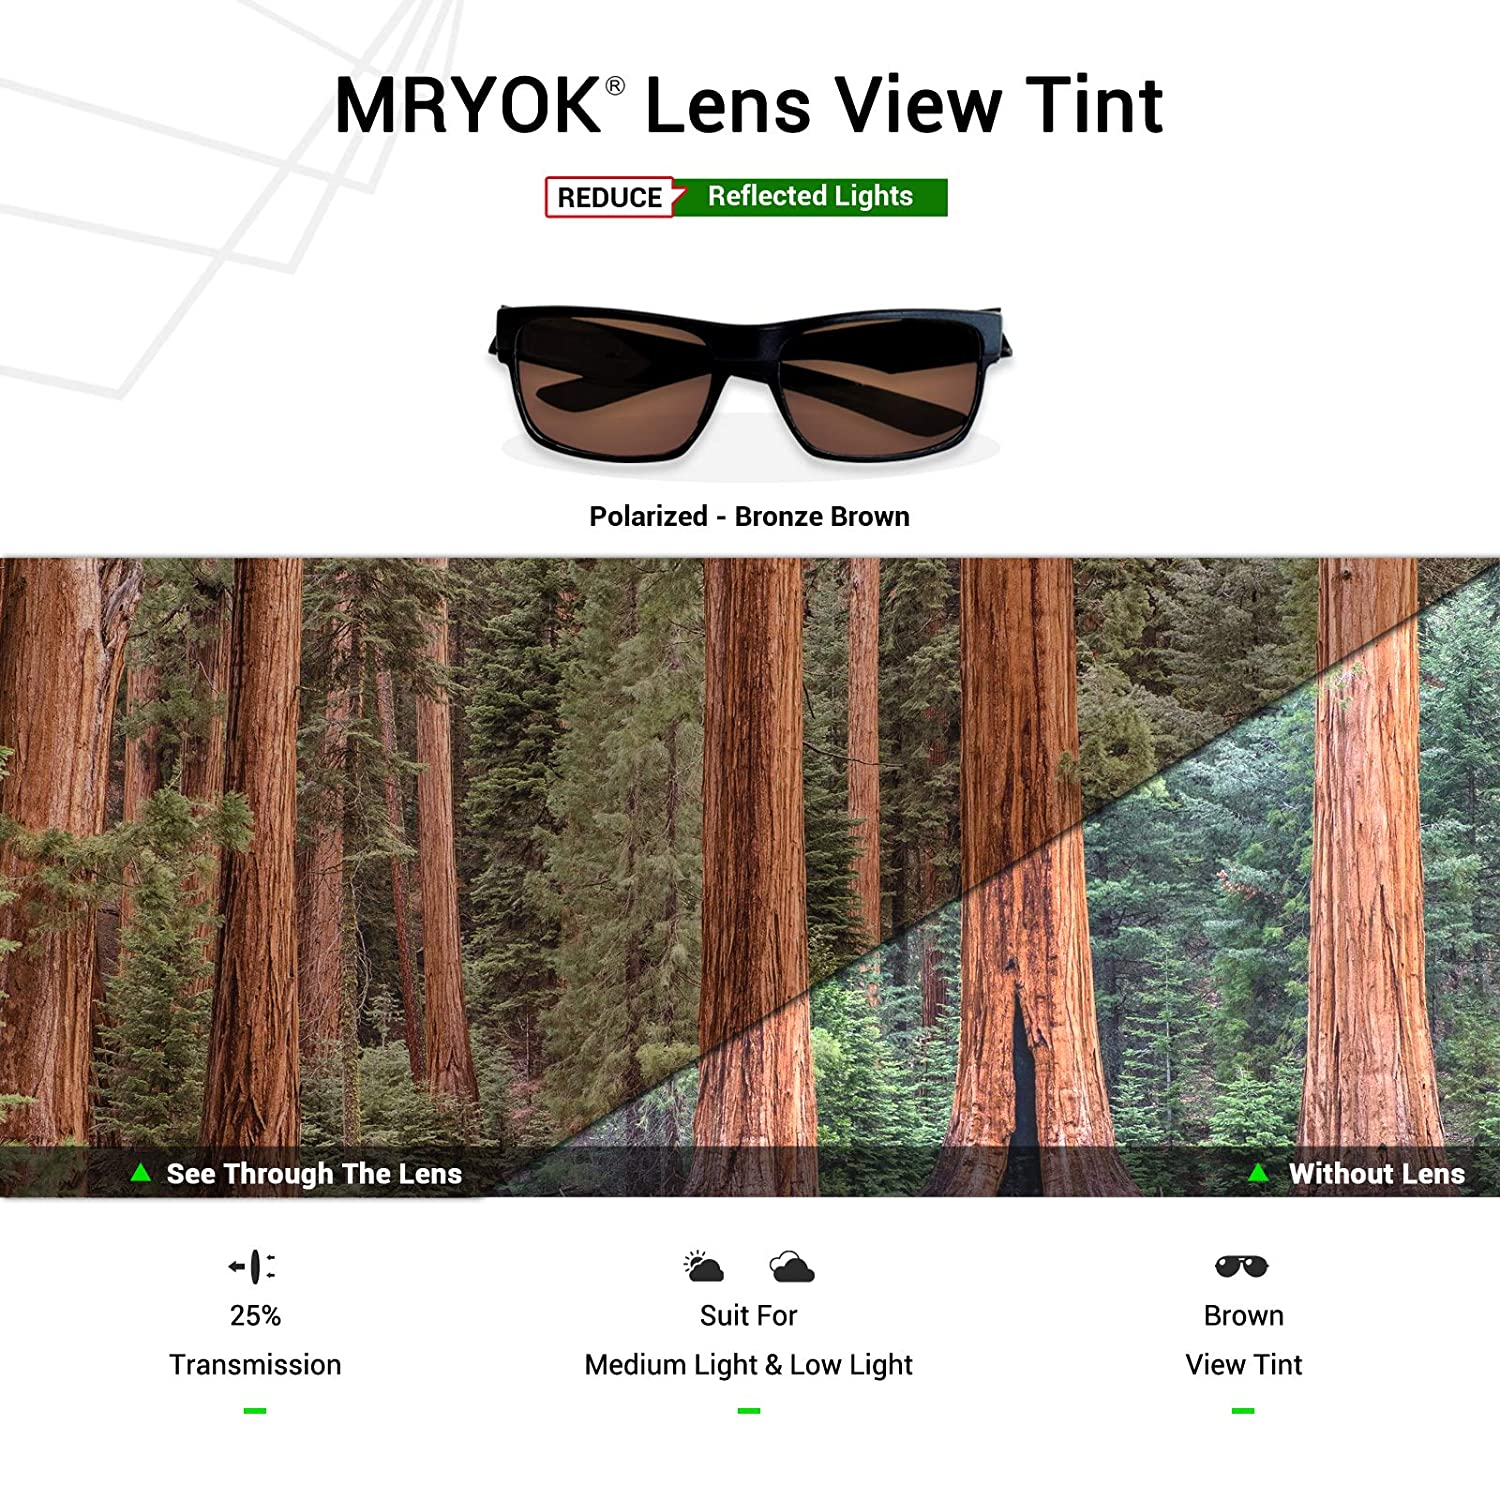 f422301fe59de Amazon.com  Mryok Polarized Replacement Lenses for Oakley Tightrope -  Bronze Brown  Clothing